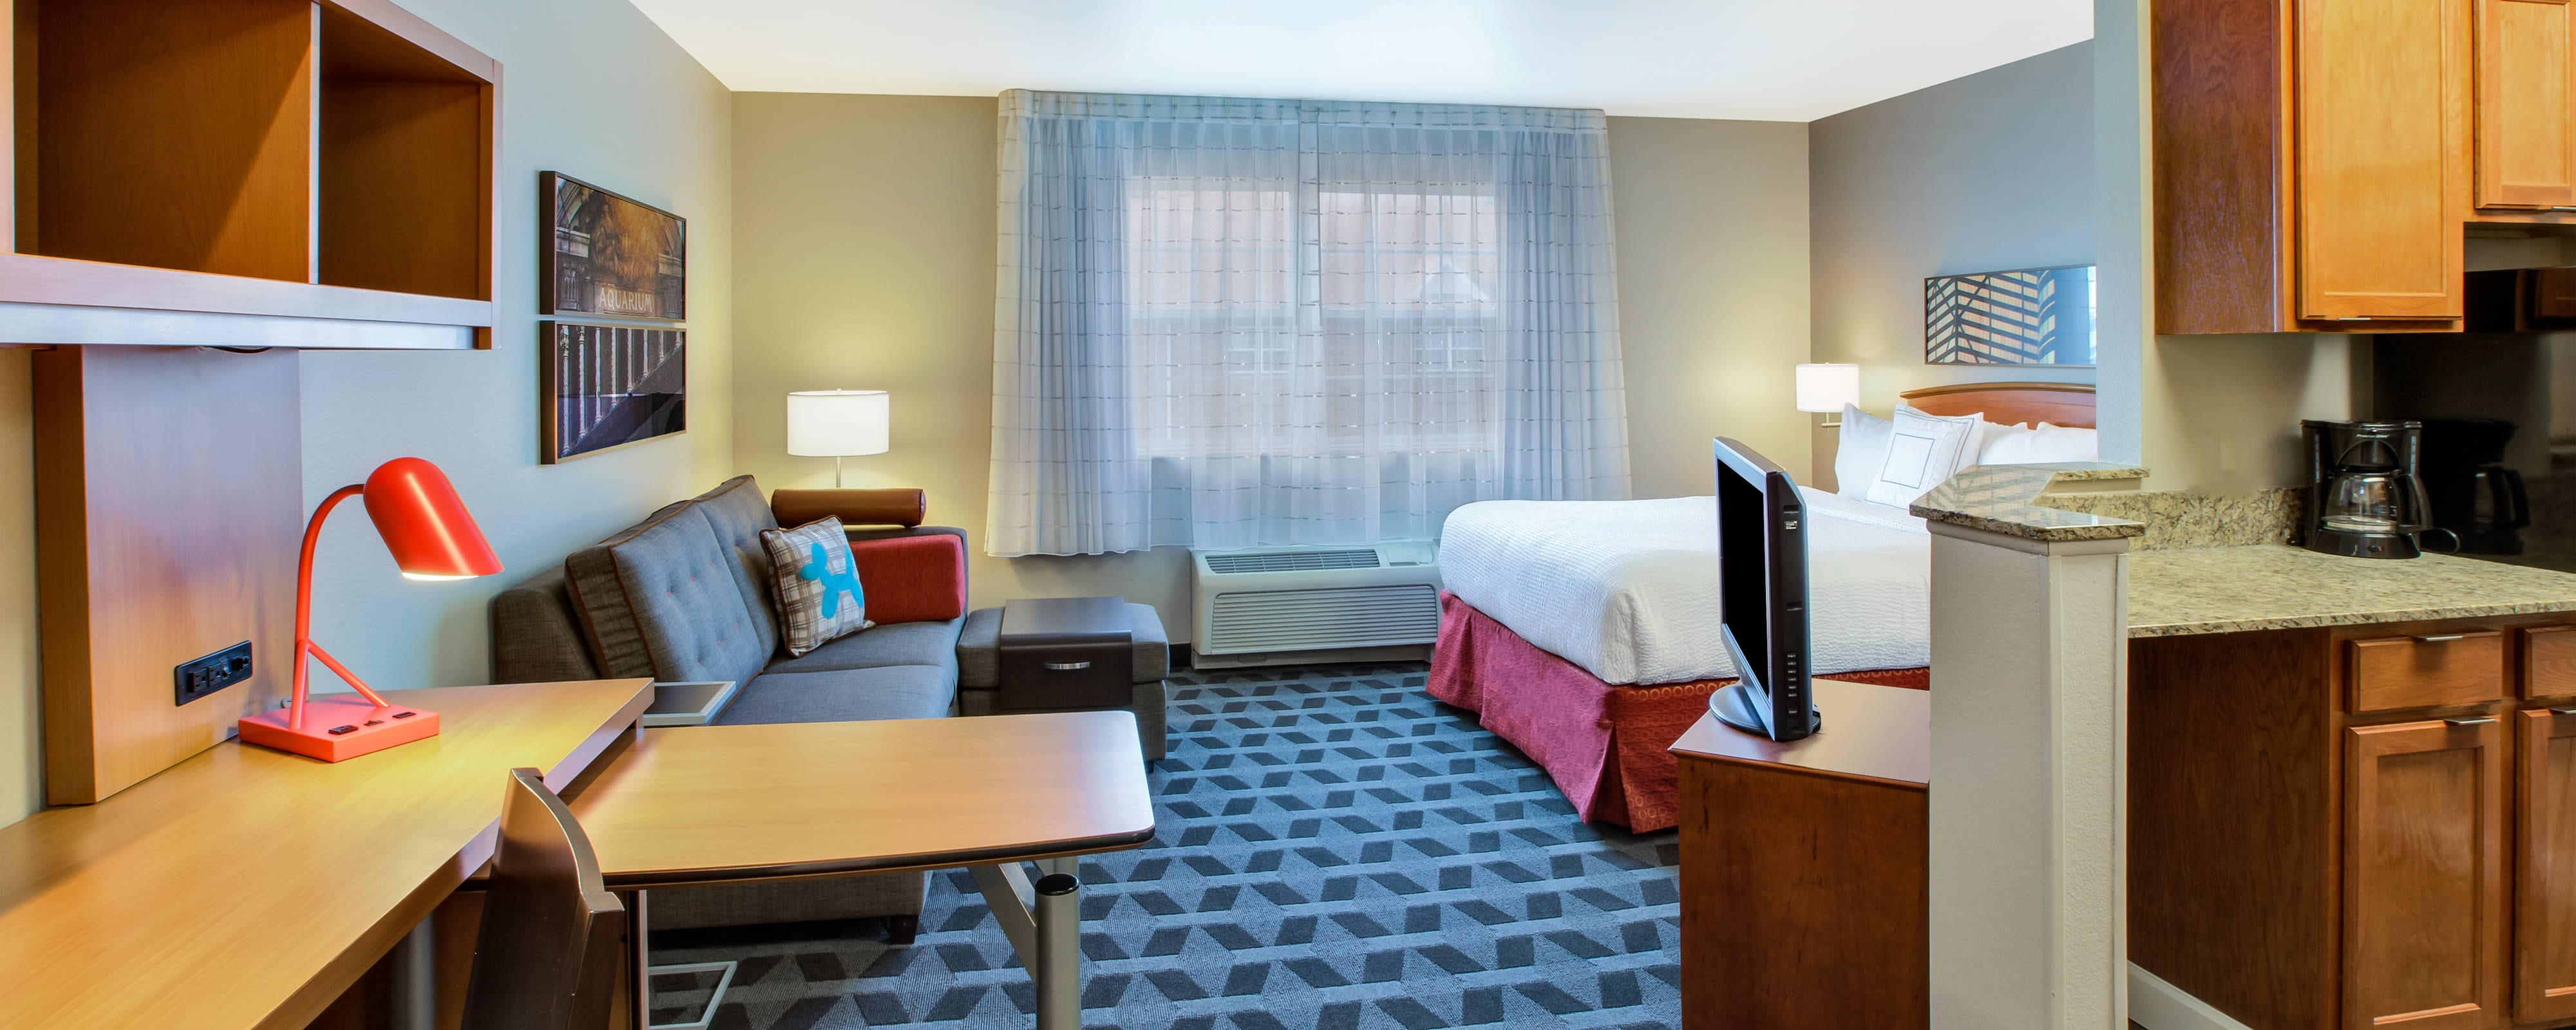 Hotels In Livonia Mi Towneplace Suites Detroit Livonia